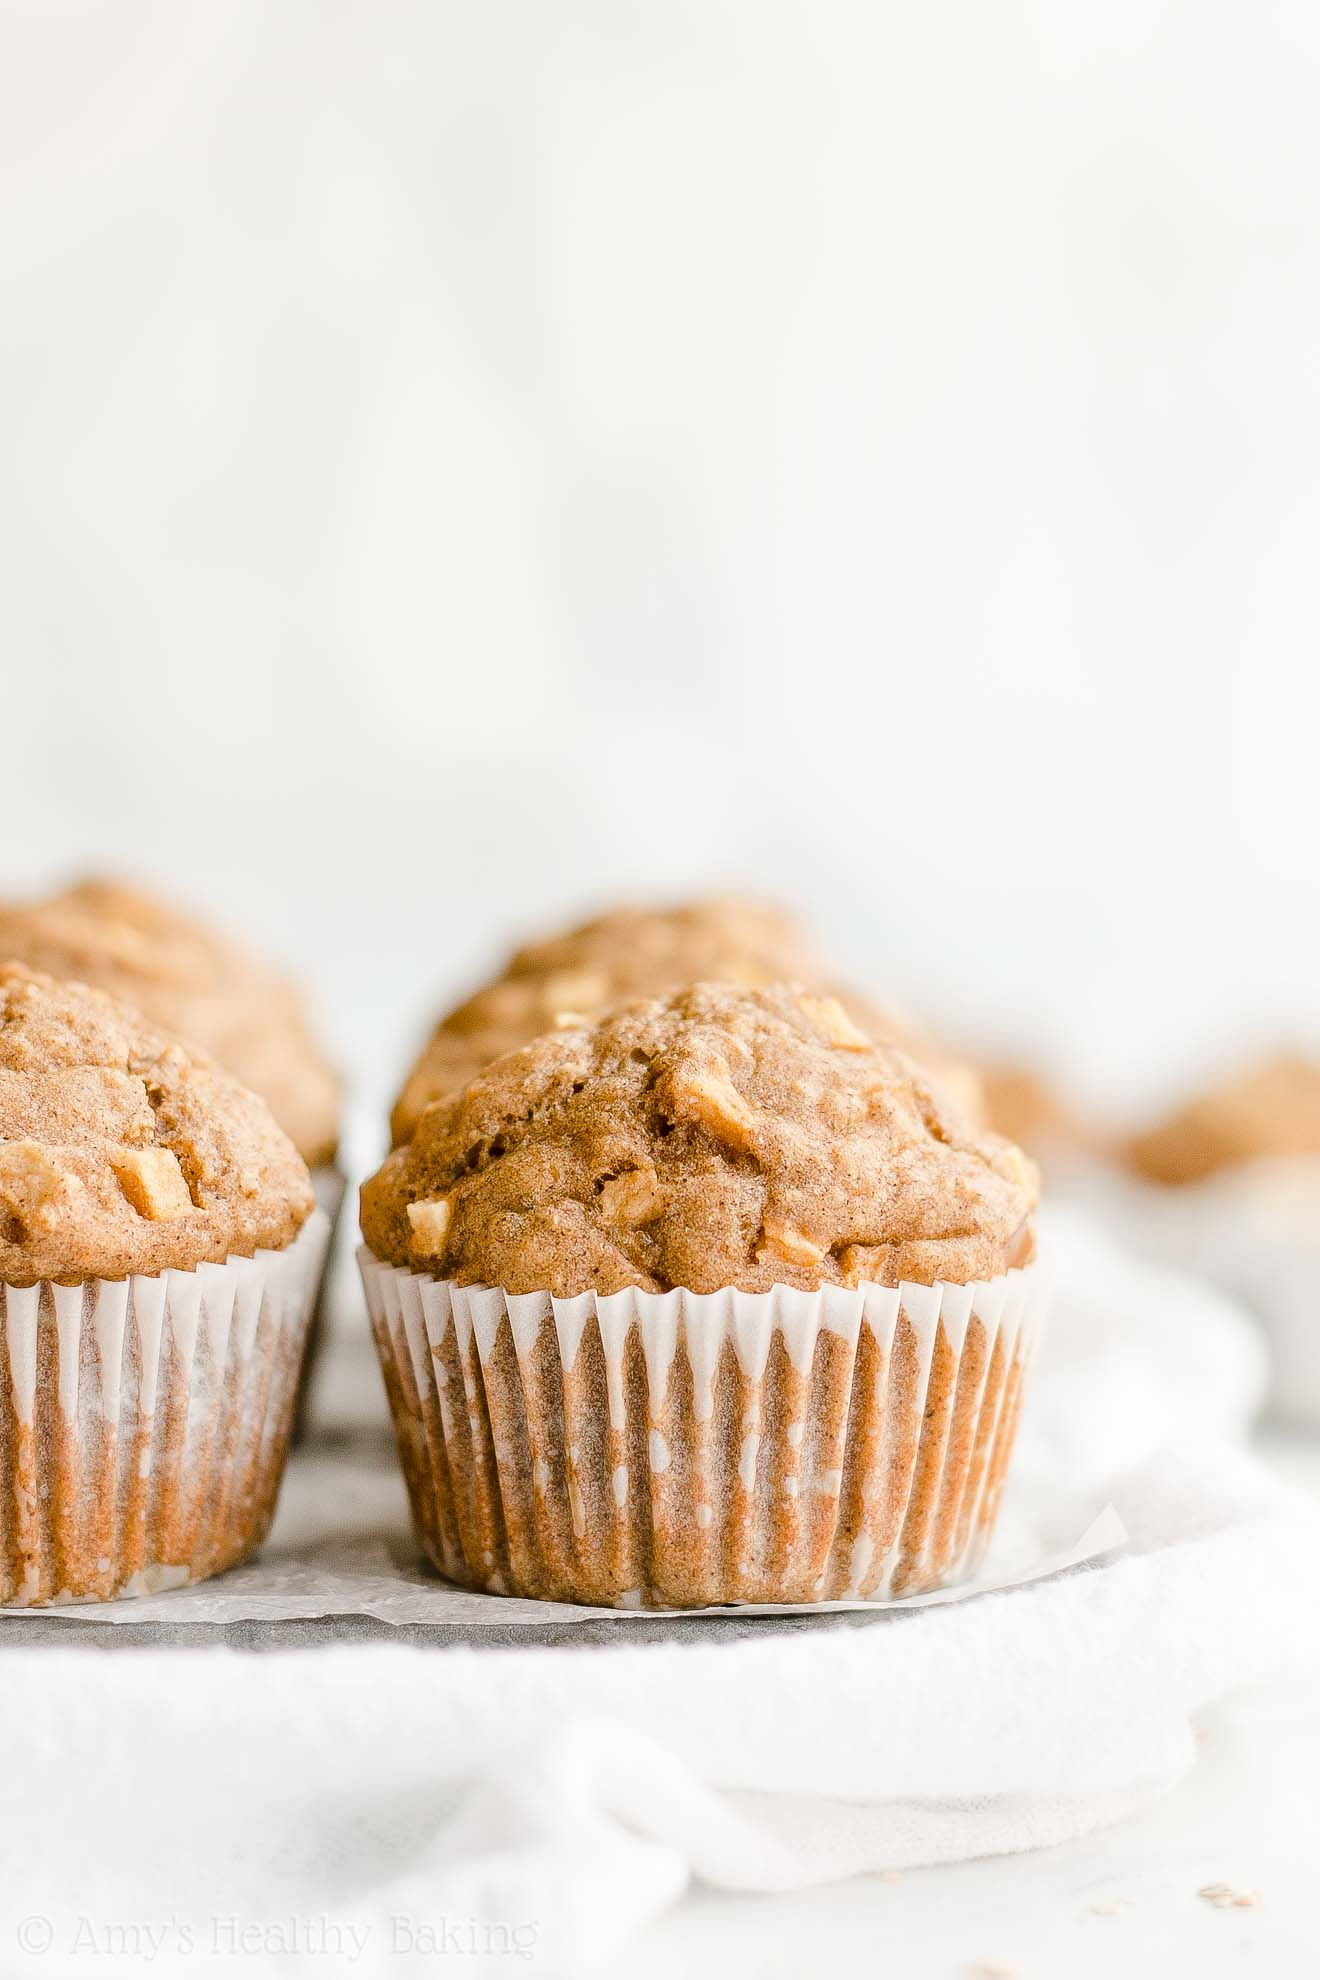 Healthy Whole Wheat Greek Yogurt Cinnamon Apple Oatmeal Muffins